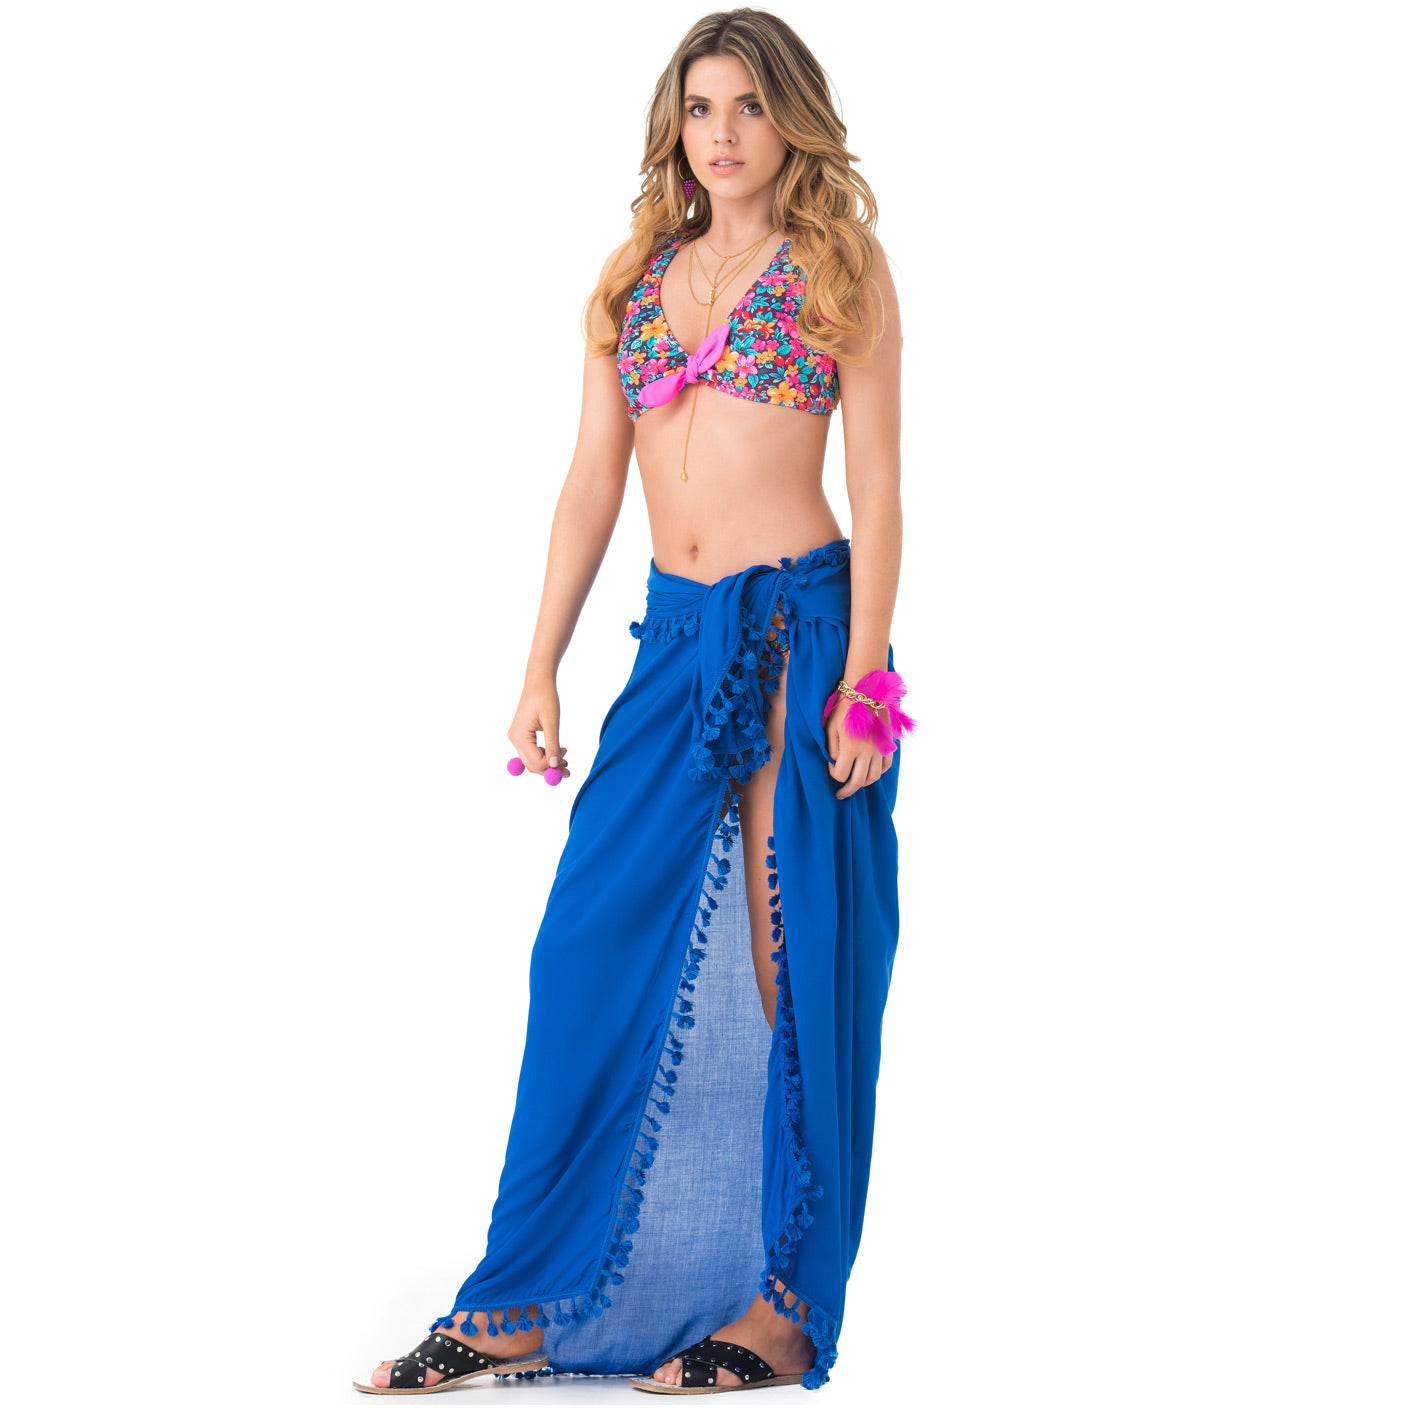 PHAX COLOMBIAN SWIMWEAR | POM POM COLOR MIX SARONG